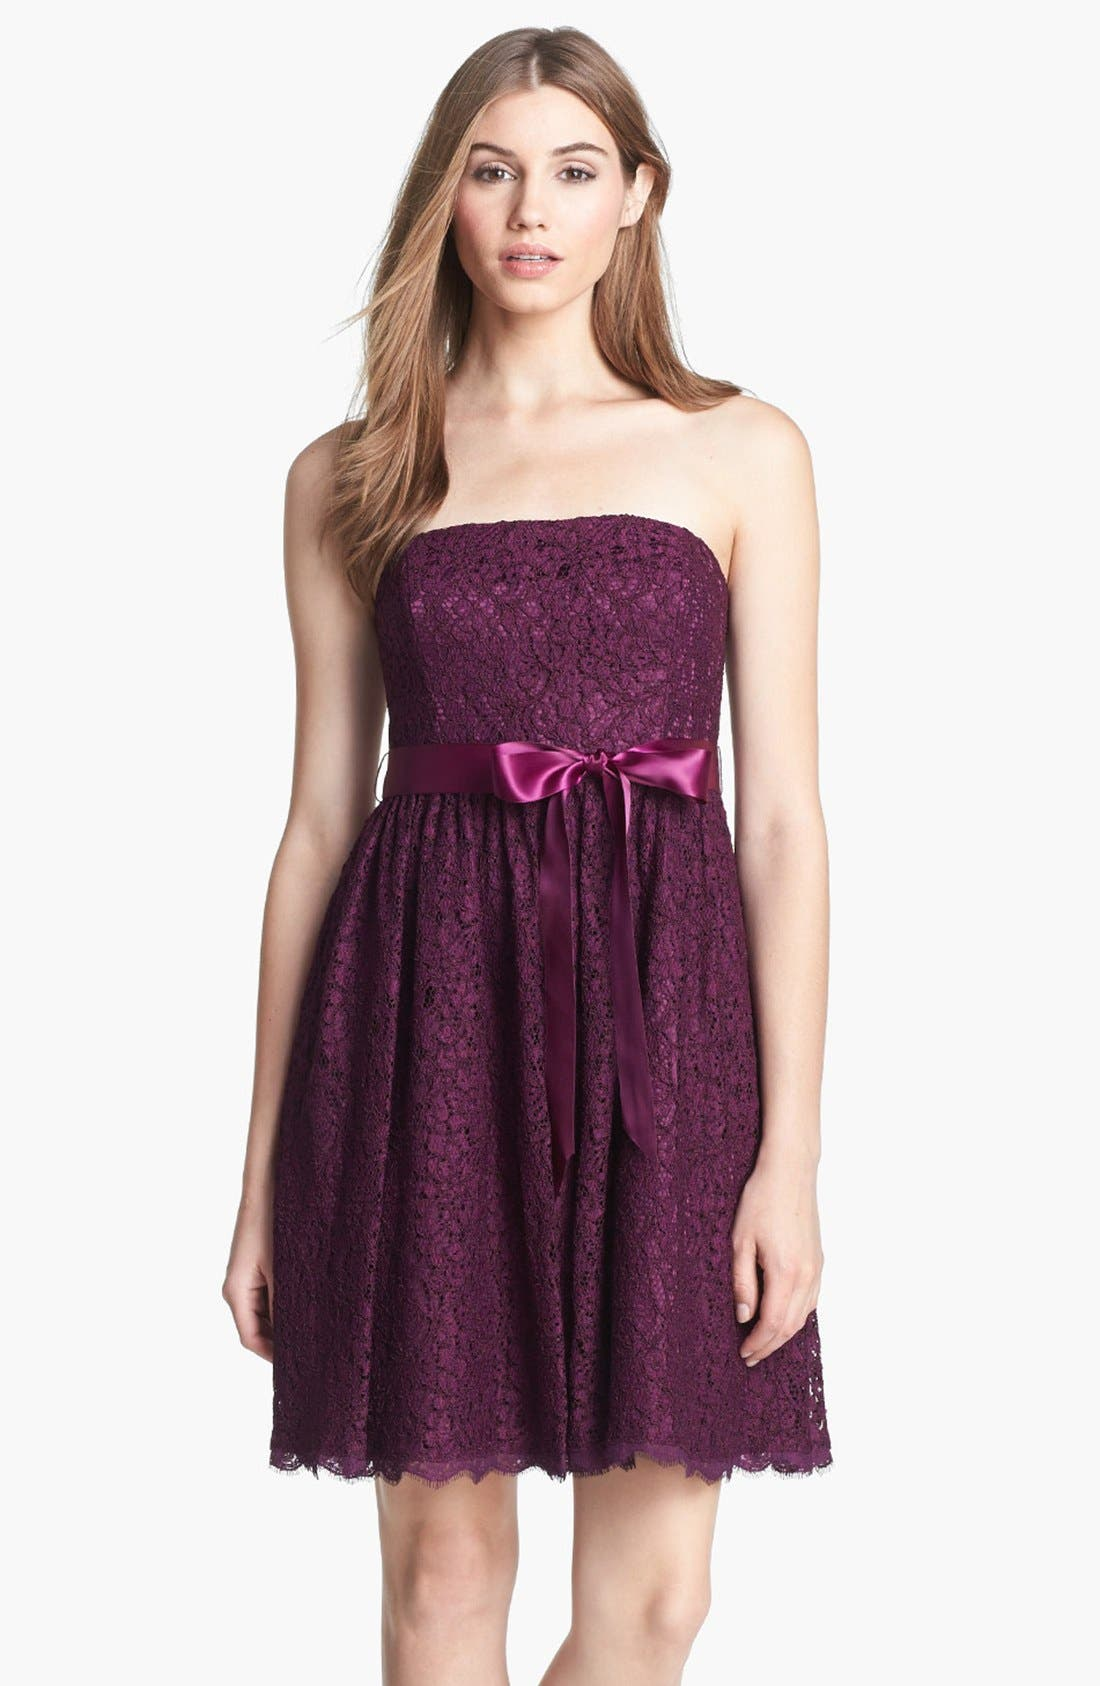 Alternate Image 1 Selected - Adrianna Papell Strapless Lace Fit & Flare Dress